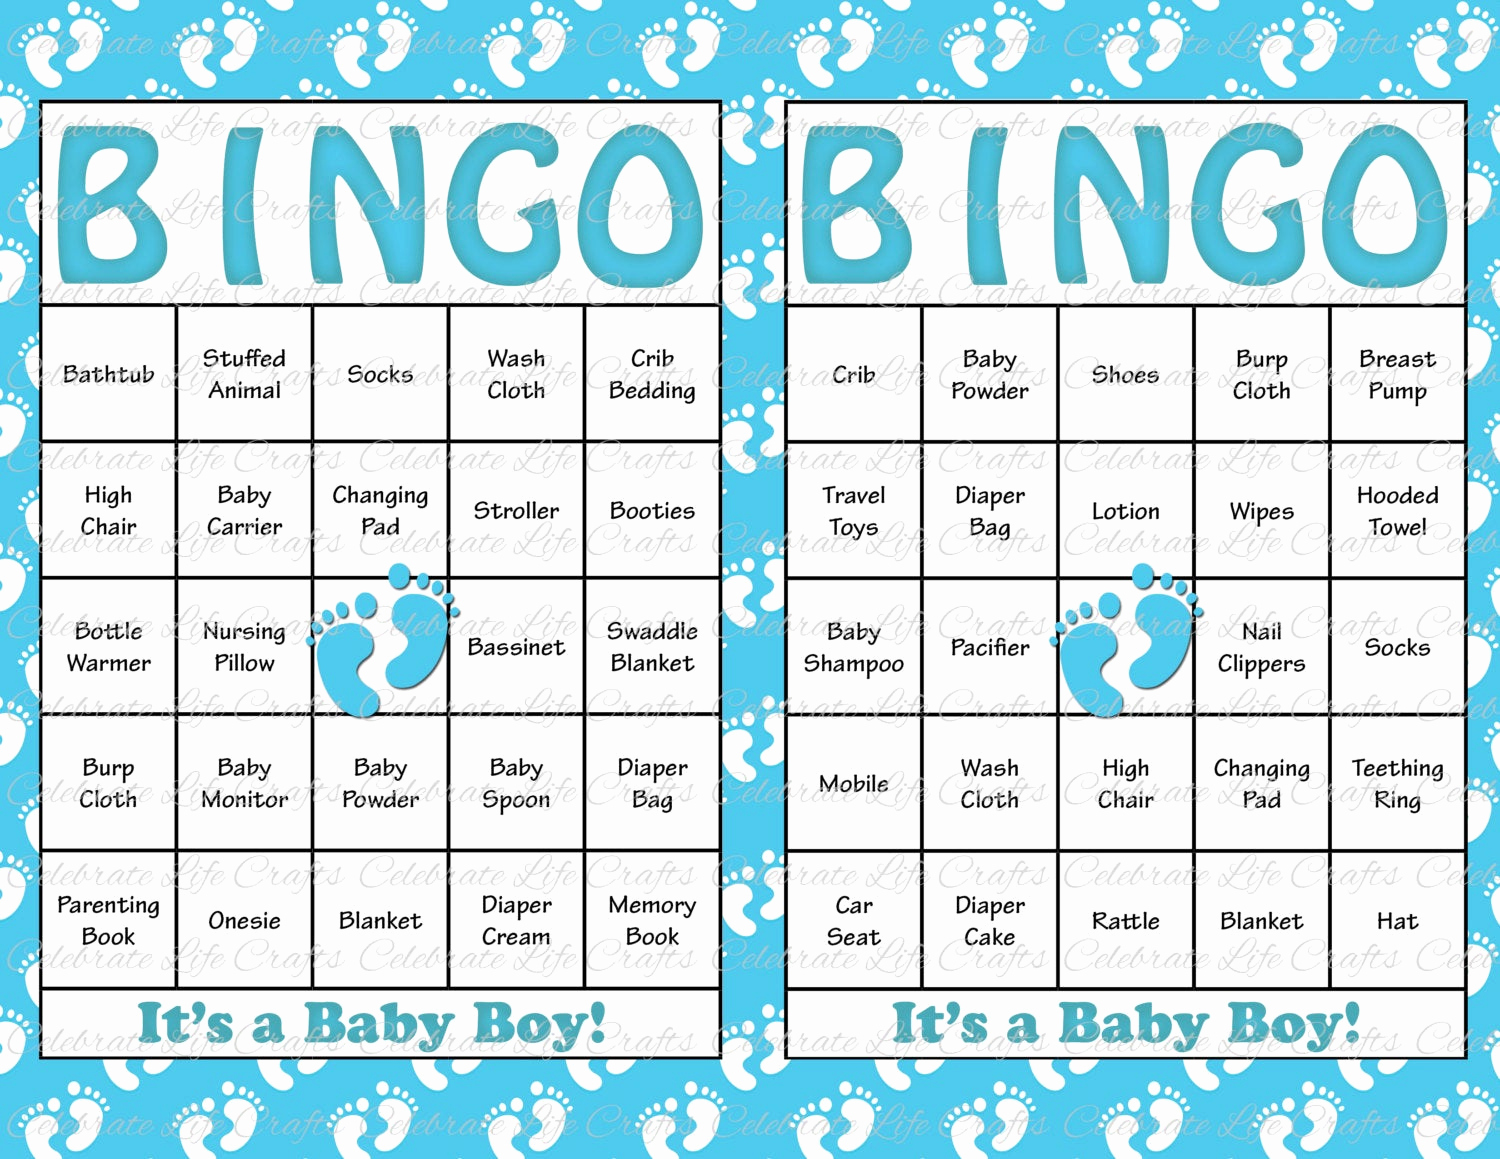 Free Printable Baby Shower Card Lovely 30 Baby Shower Bingo Cards Printable Party by